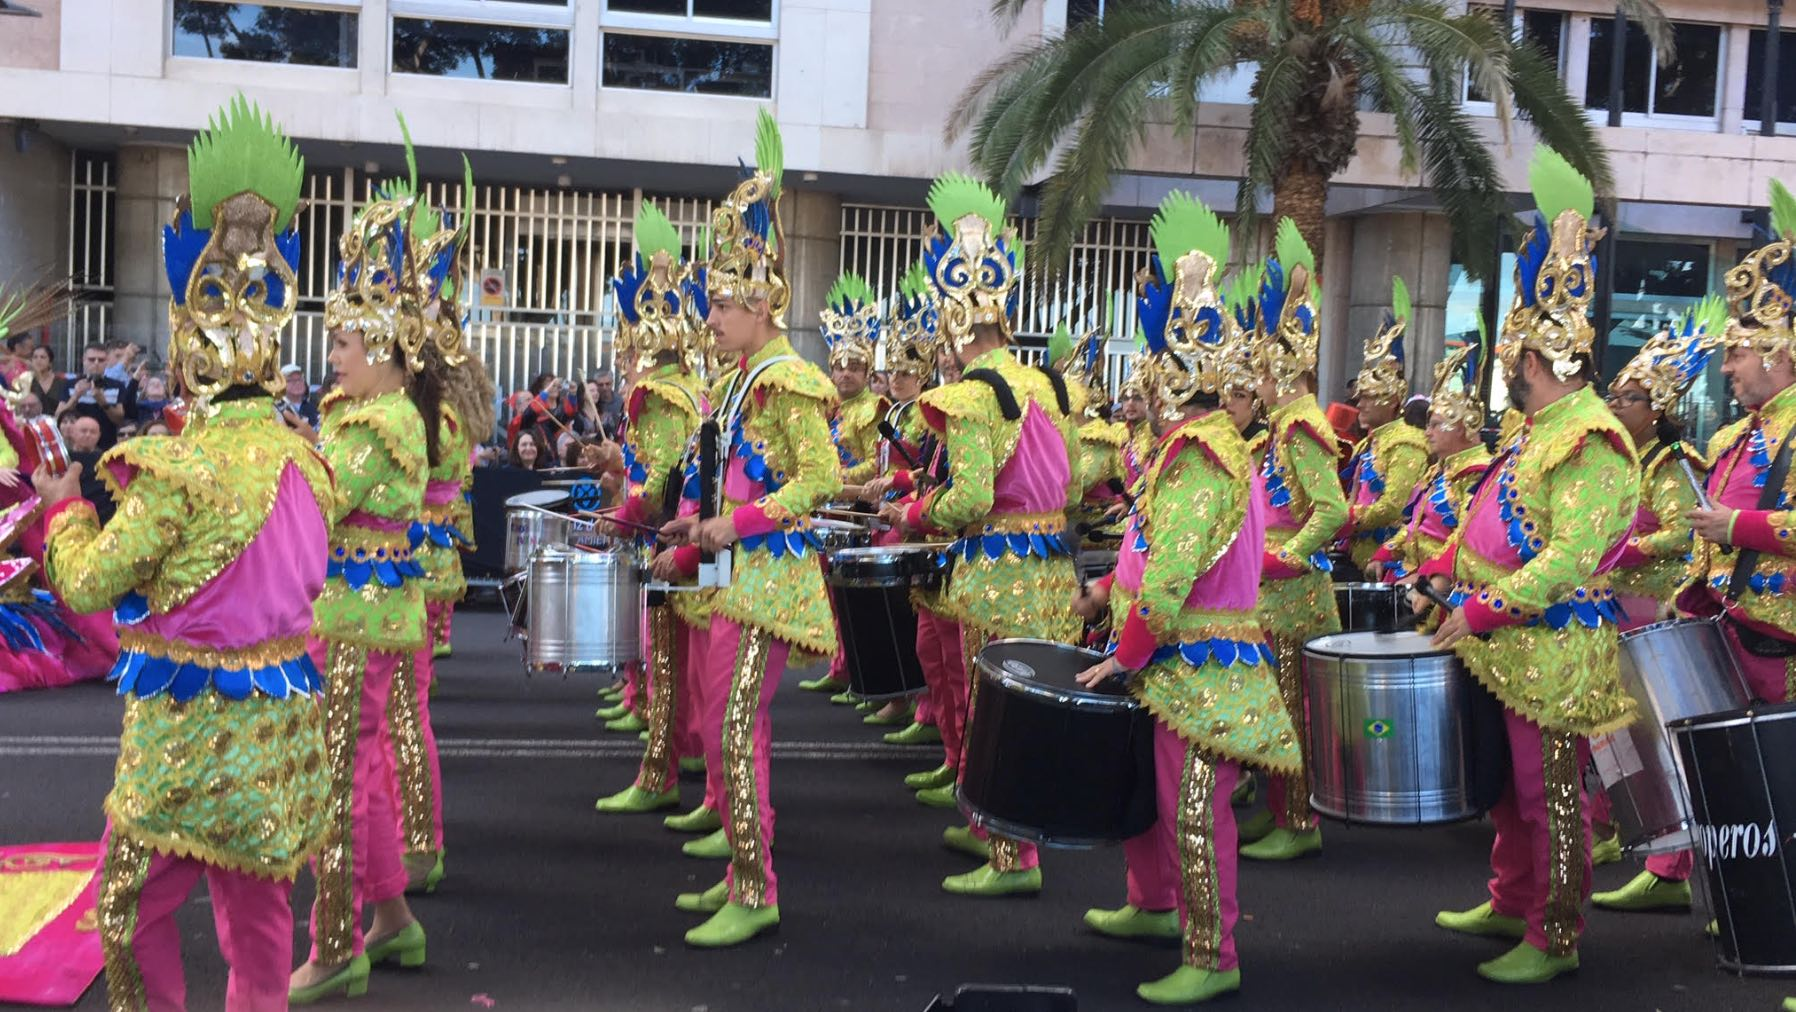 Mardi Gras Canary Islands Tenerife